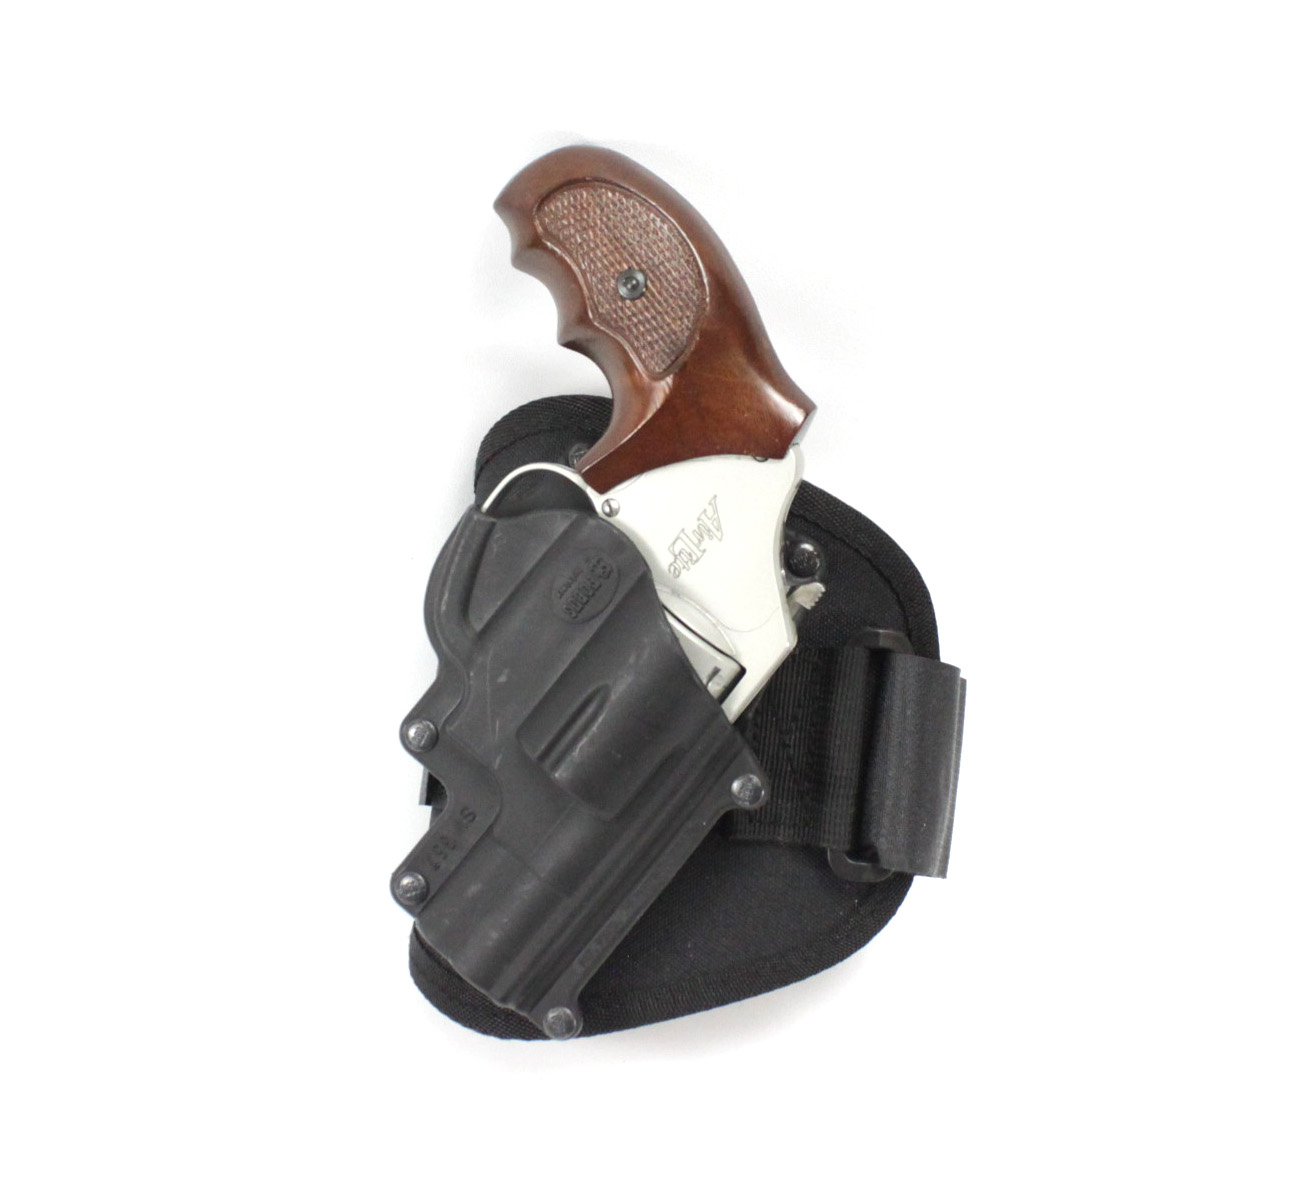 Fobus Ankle Holster Smith & Wesson J-Frame, Charter Arms, Rossi ...